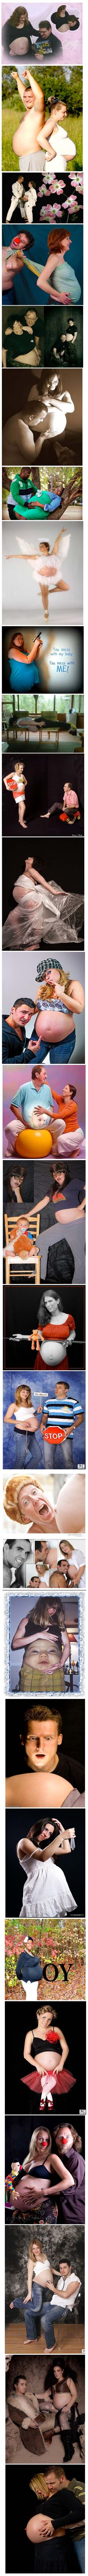 what in the hell!!!! Awkward Maternity photos, this bunch is just priceless